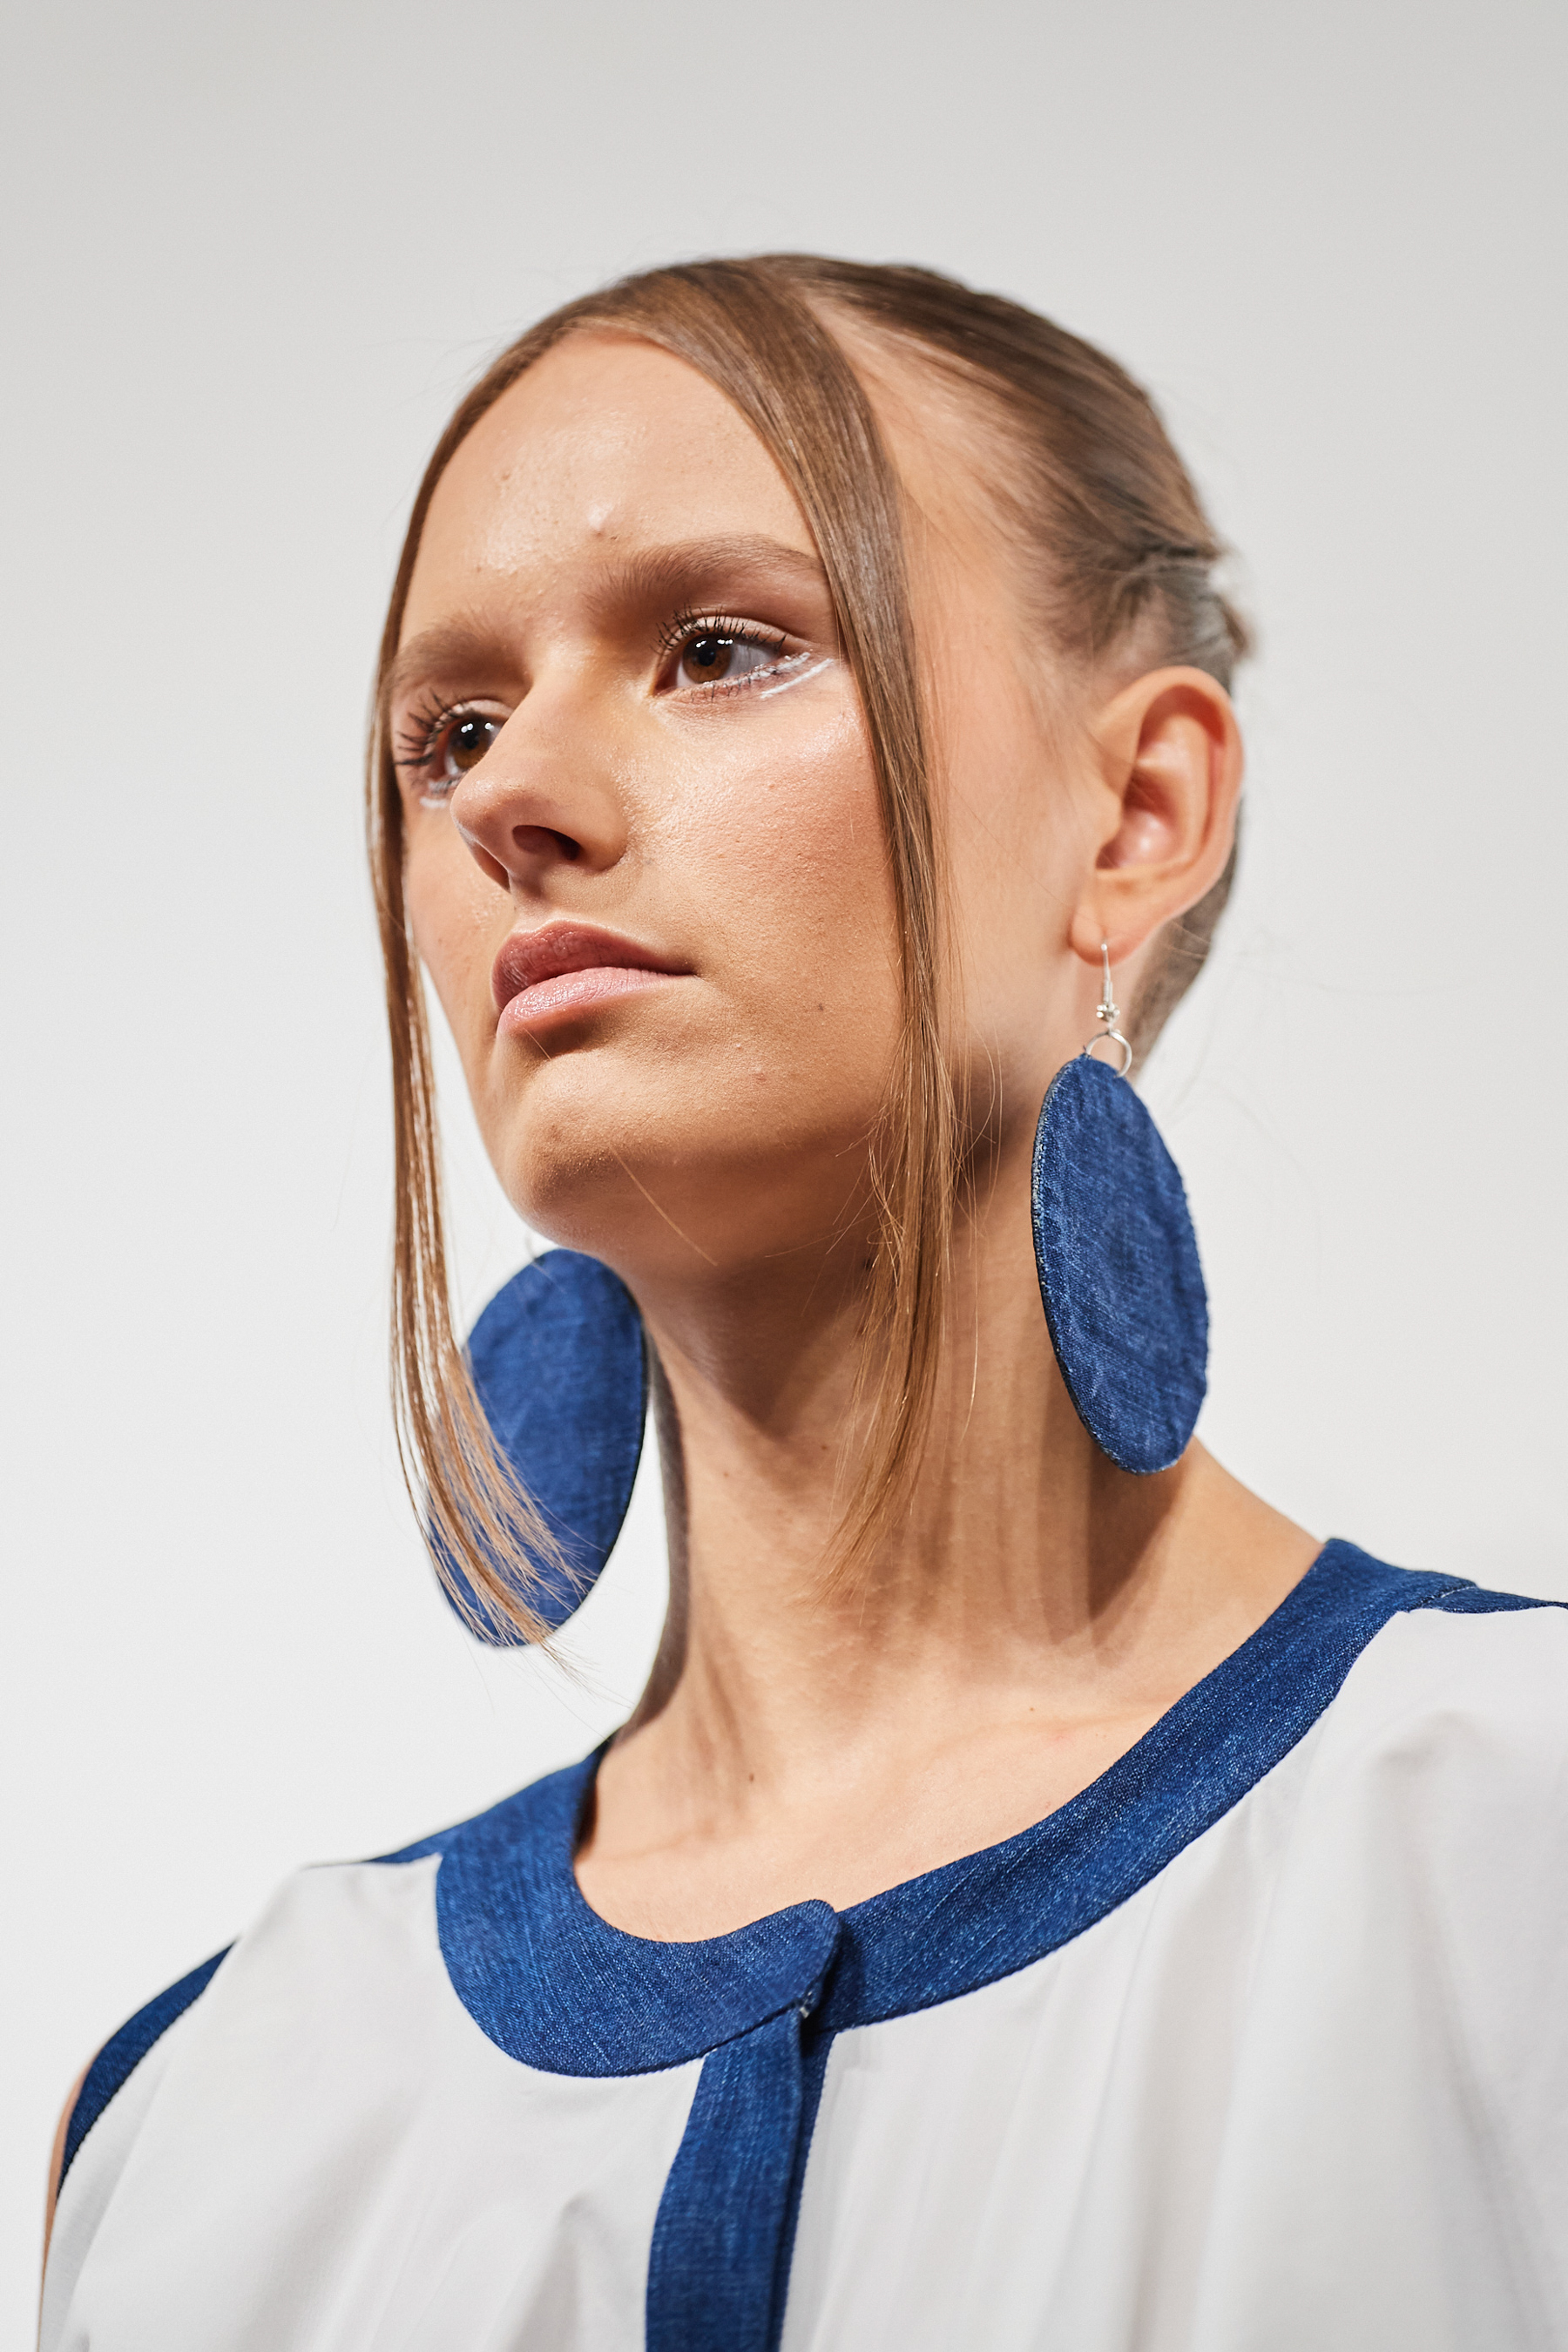 Mossi Spring 2022 Details Fashion Show